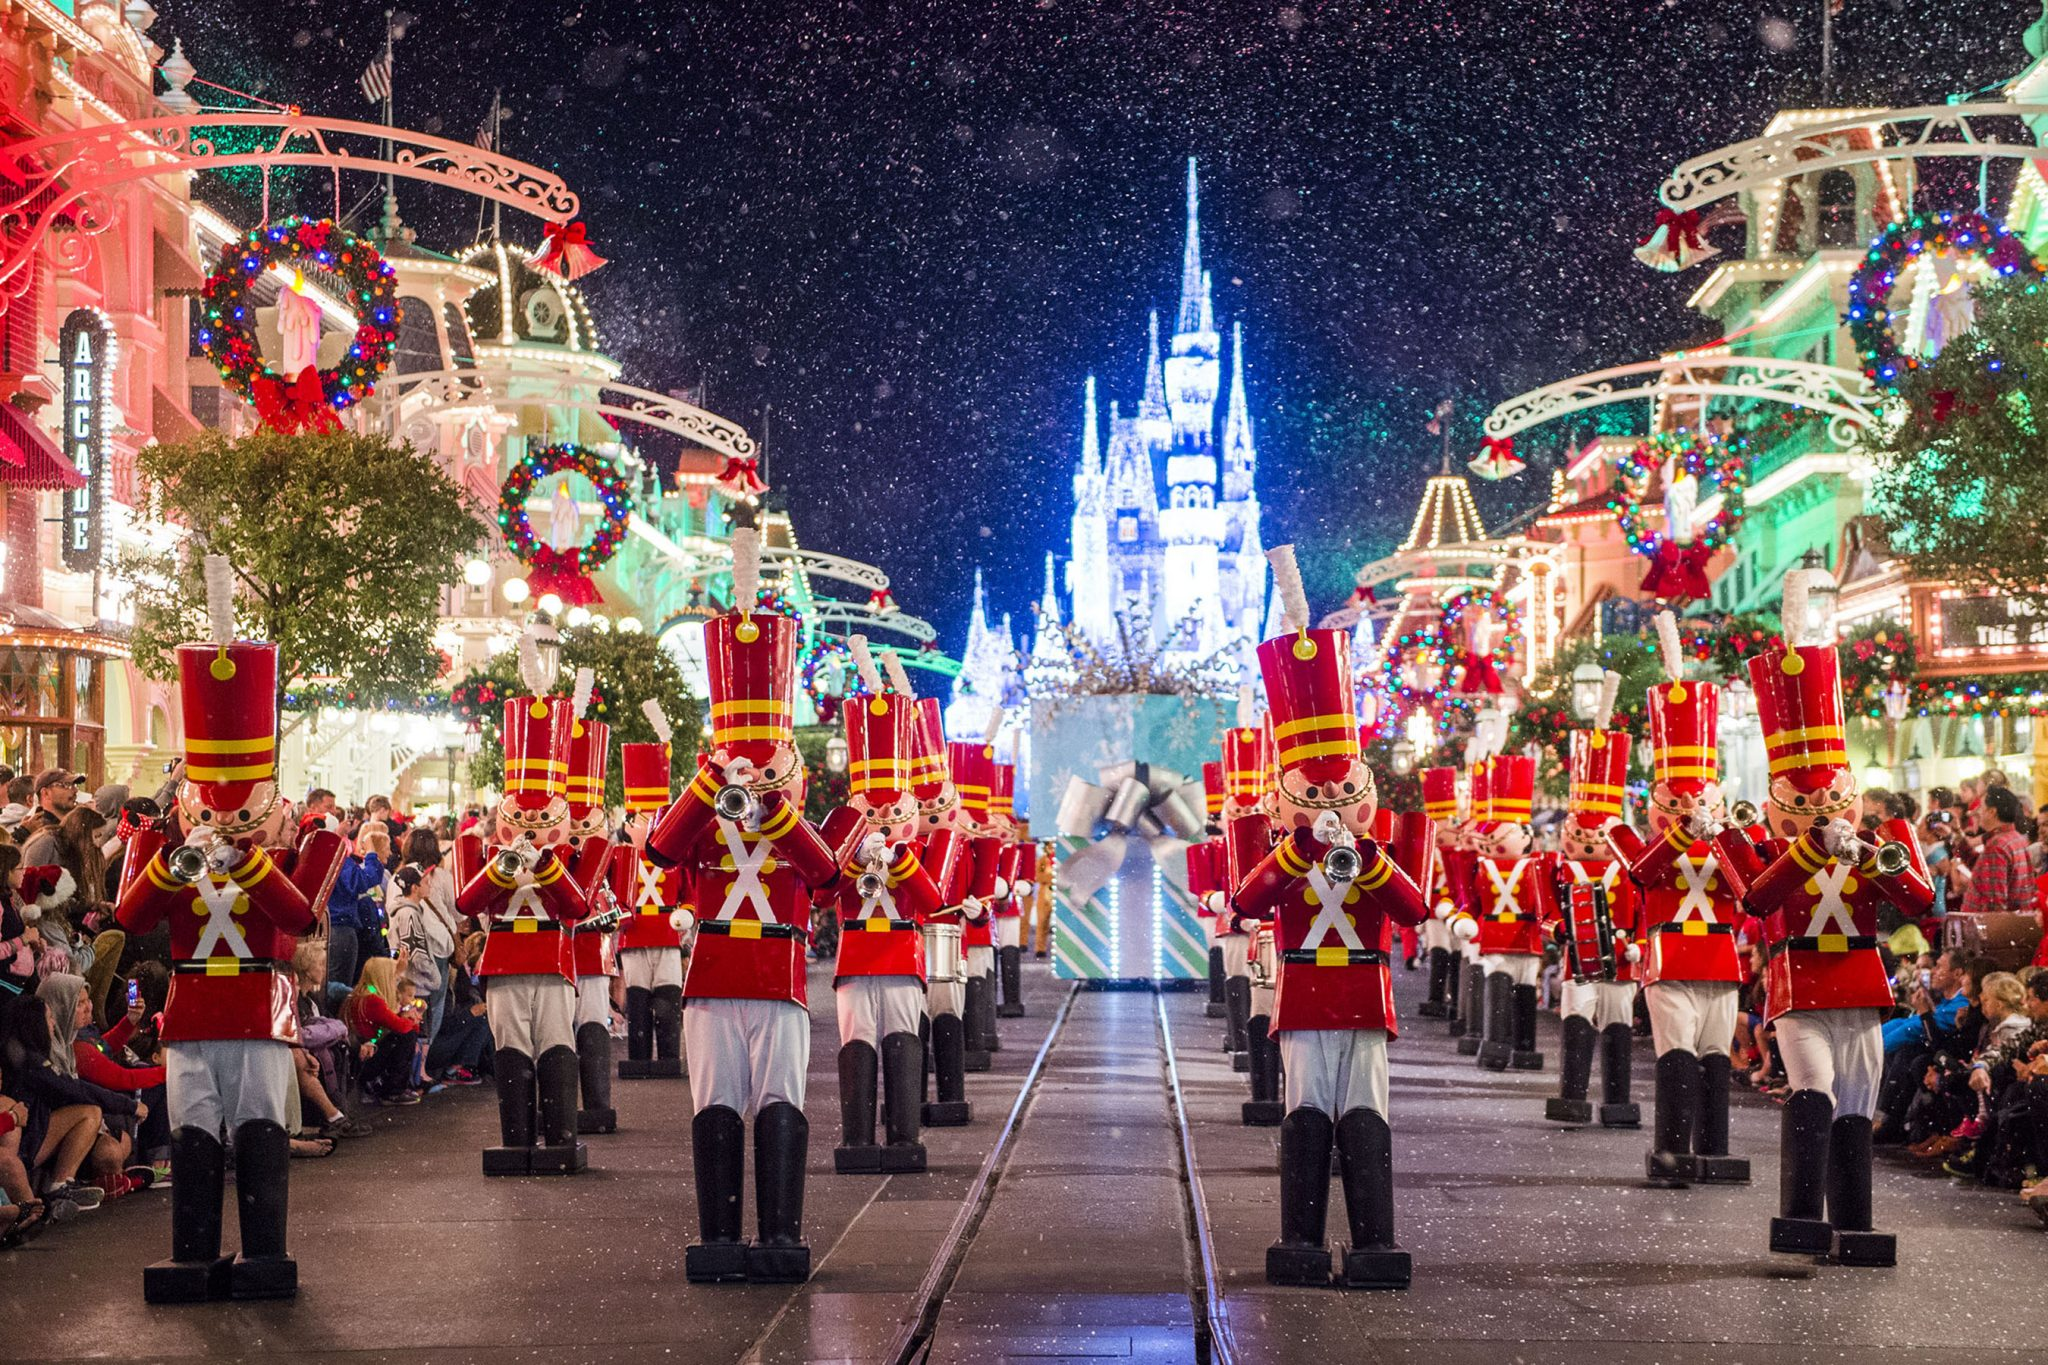 ResortLoop.com Episode 280 – A Christmas Fantasy Parade